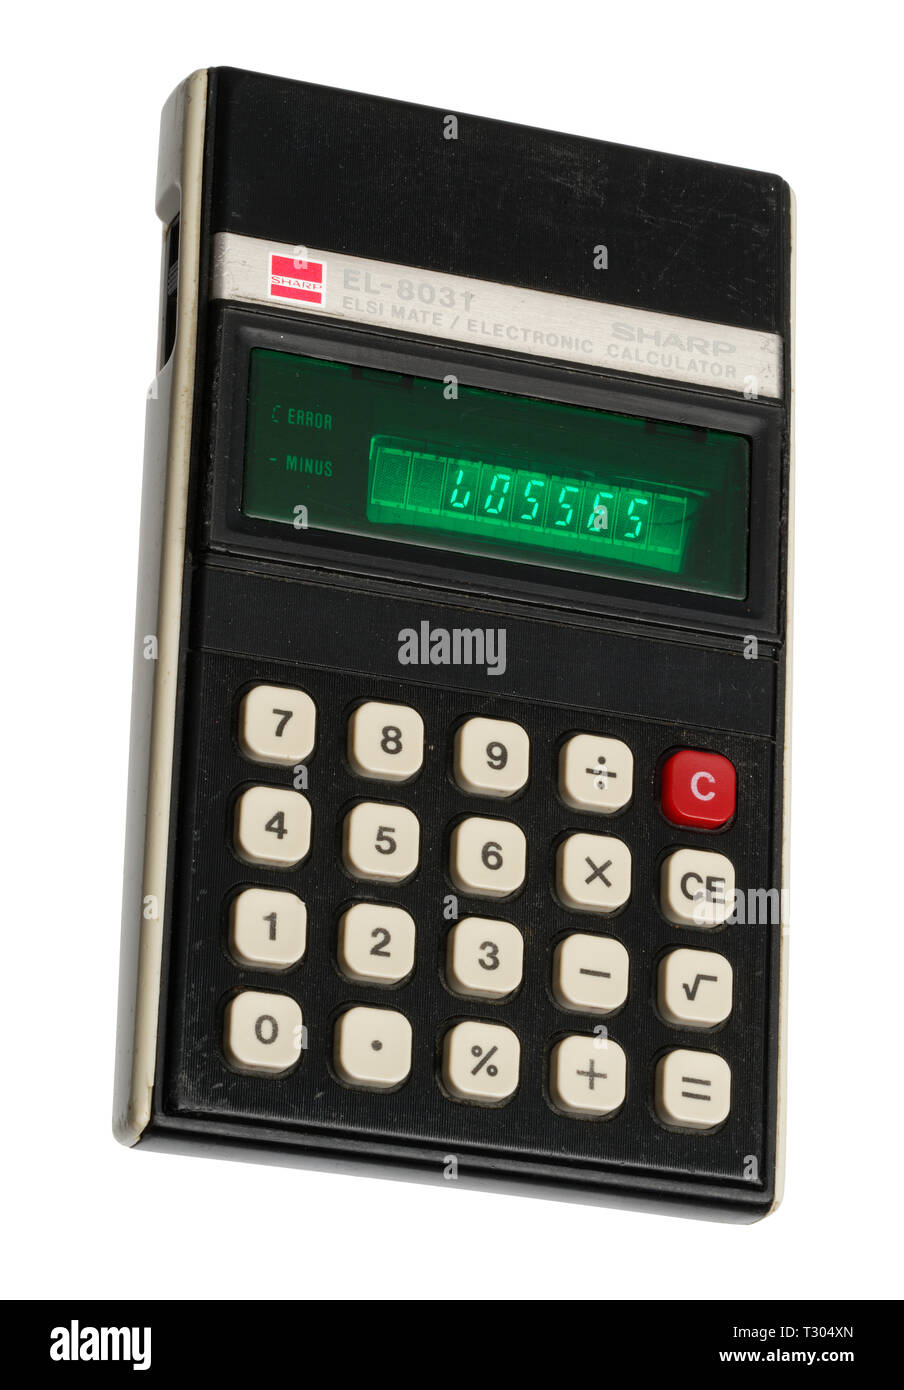 1970's pocket calculator. Simple arithmetic machine, handheld device. Sharp ELSI MATE EL-8031. The word LOSSES spelt out on the display. Stock Photo